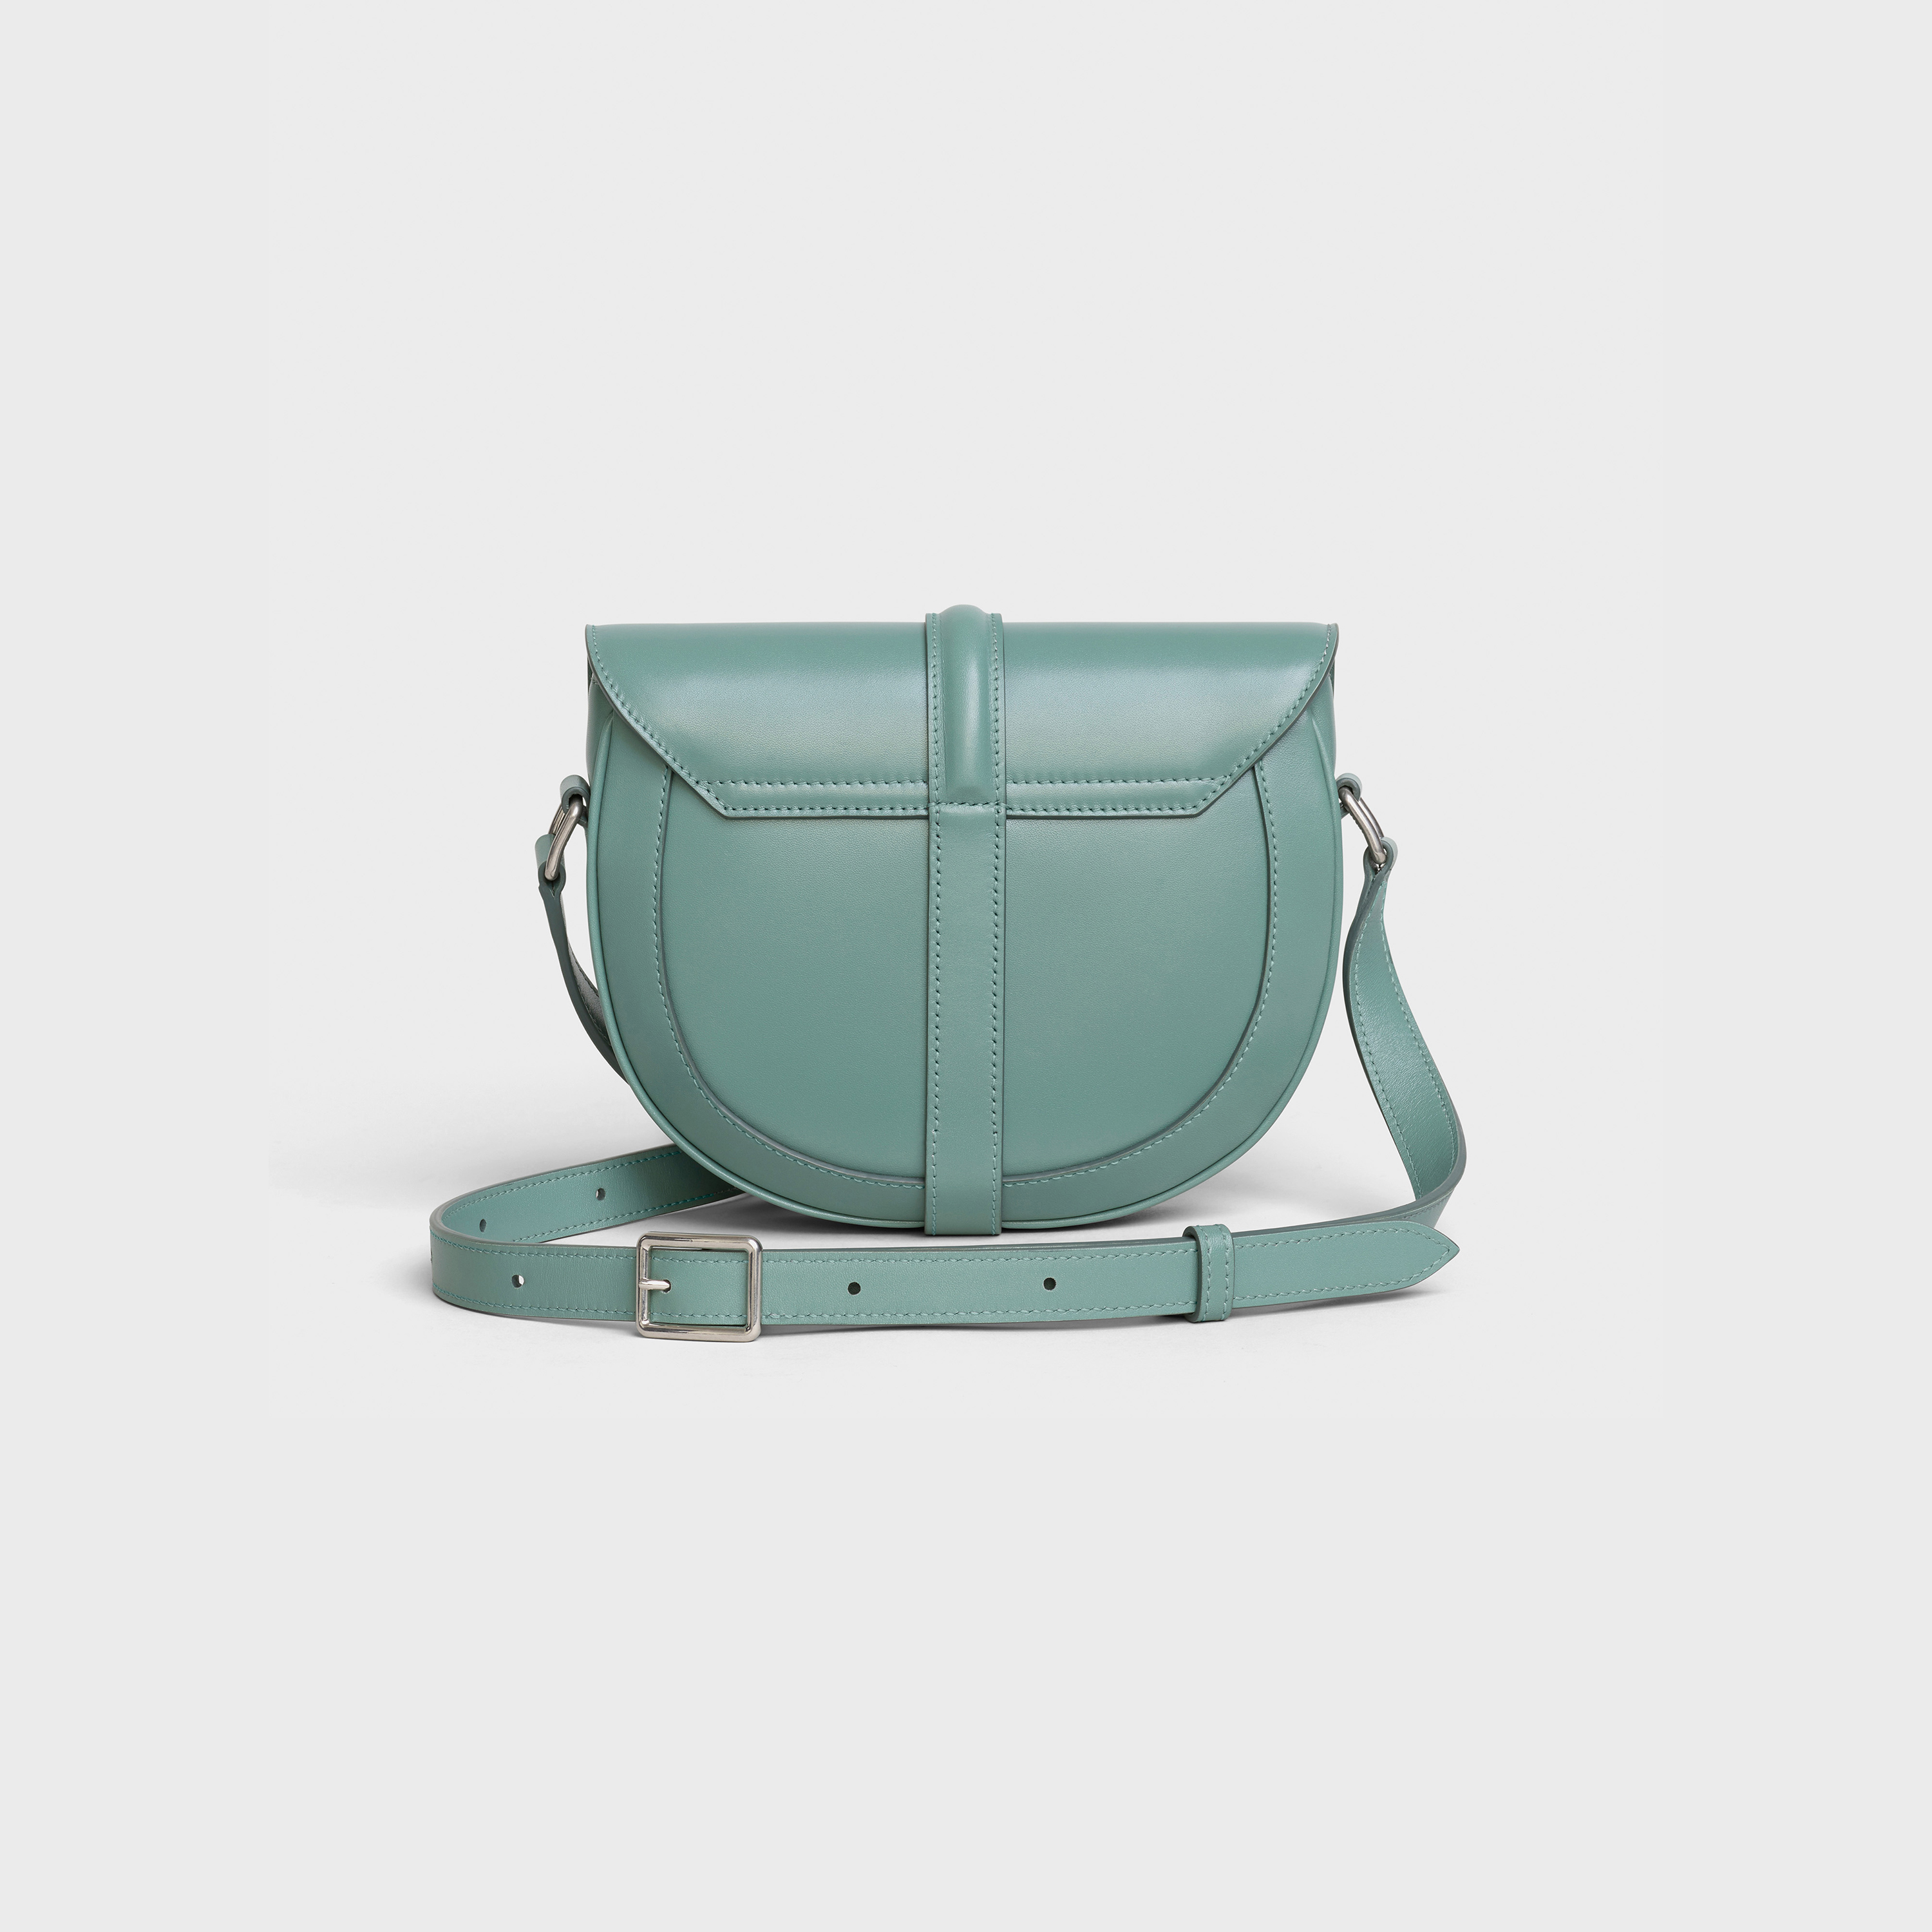 Small Besace 16 Bag in satinated calfskin | CELINE